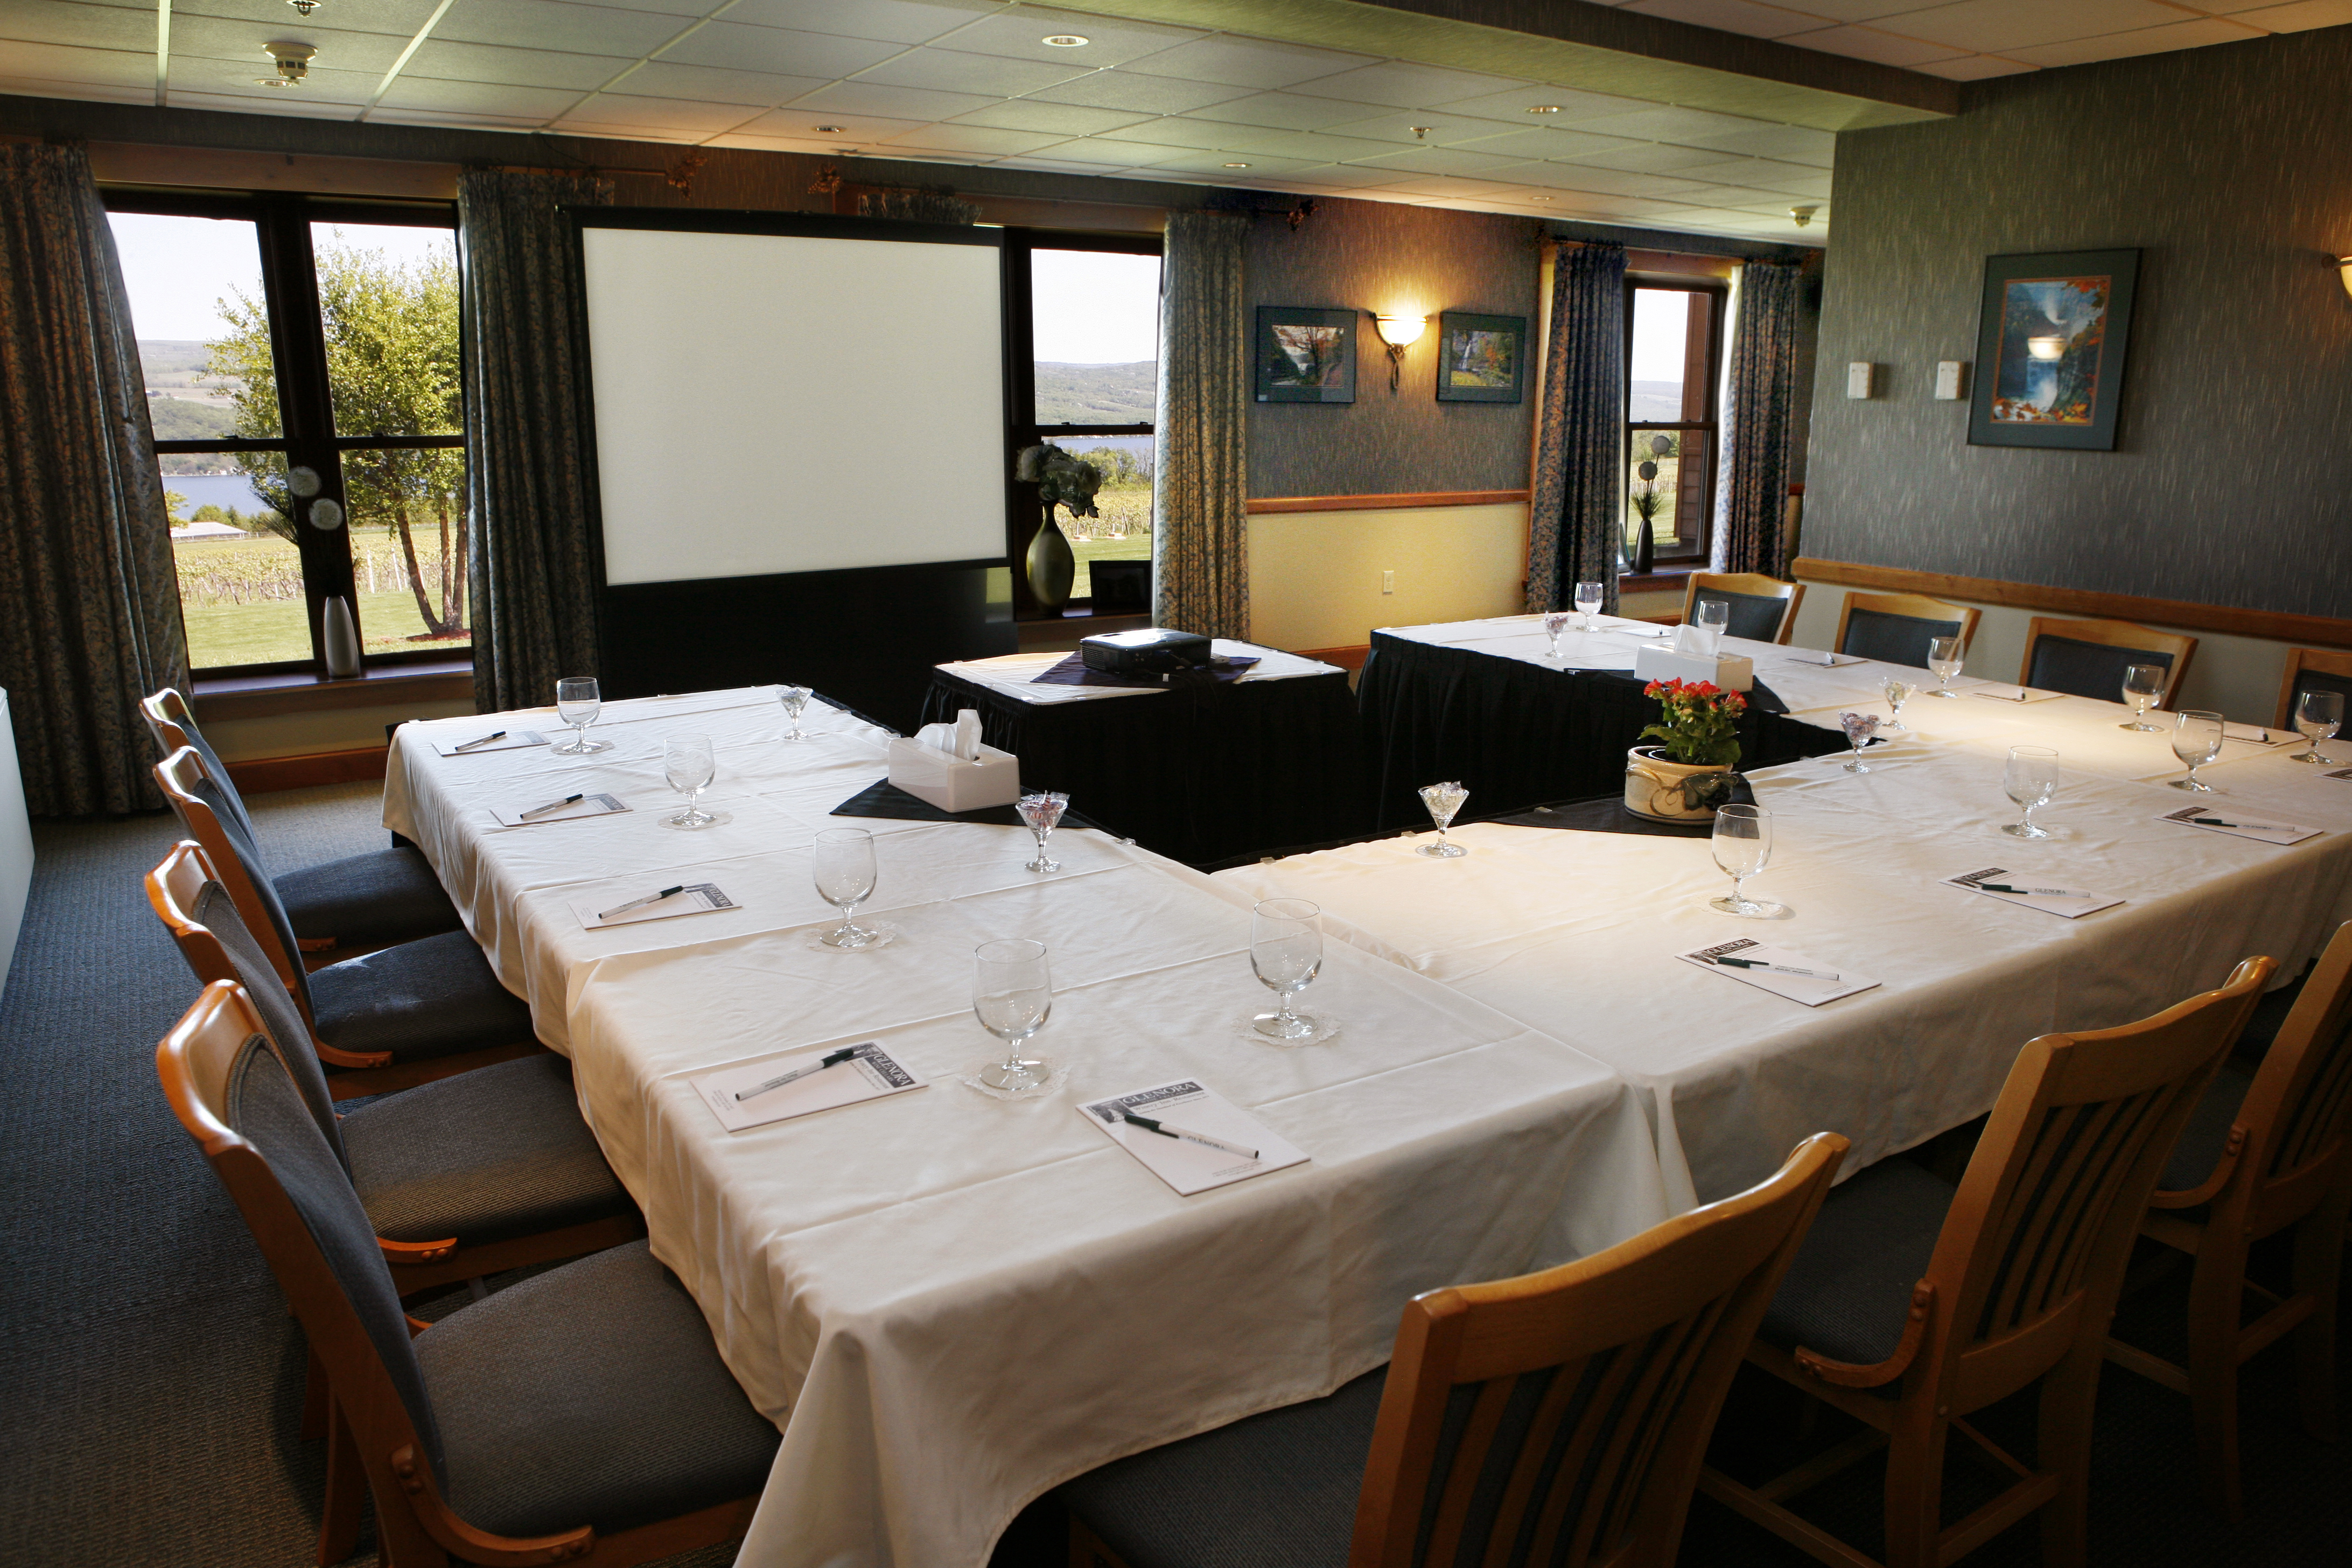 See Photos. & Glenora Wine Cellars - Inn - Meetings and Conferences